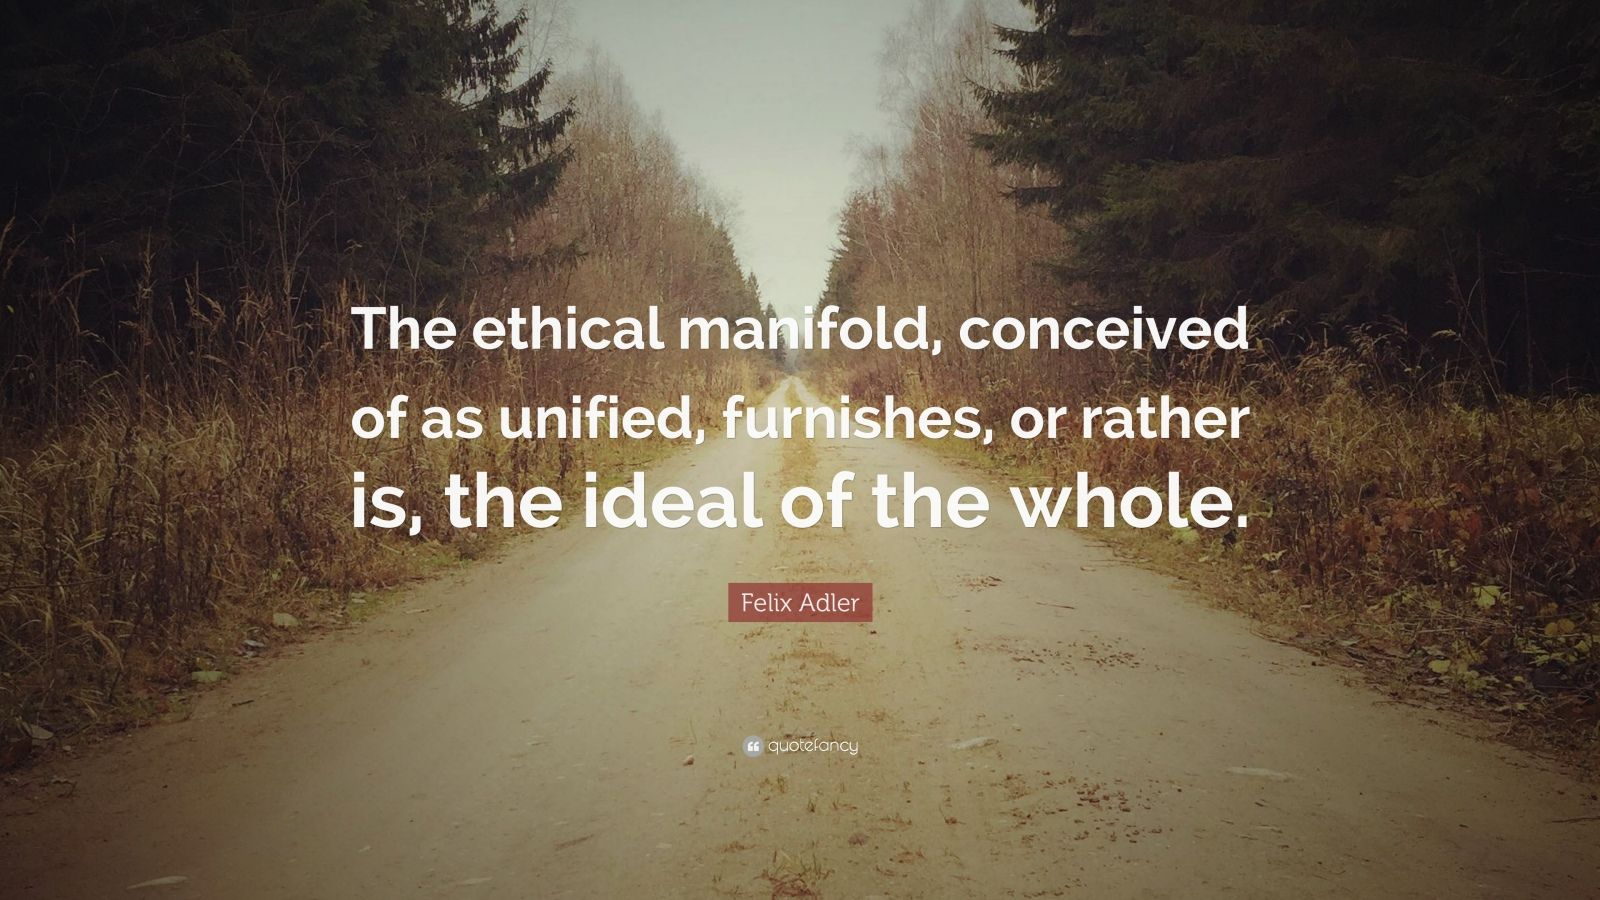 """Felix Adler Quote: """"The ethical manifold, conceived of as unified, furnishes, or rather is, the ideal of the whole."""""""